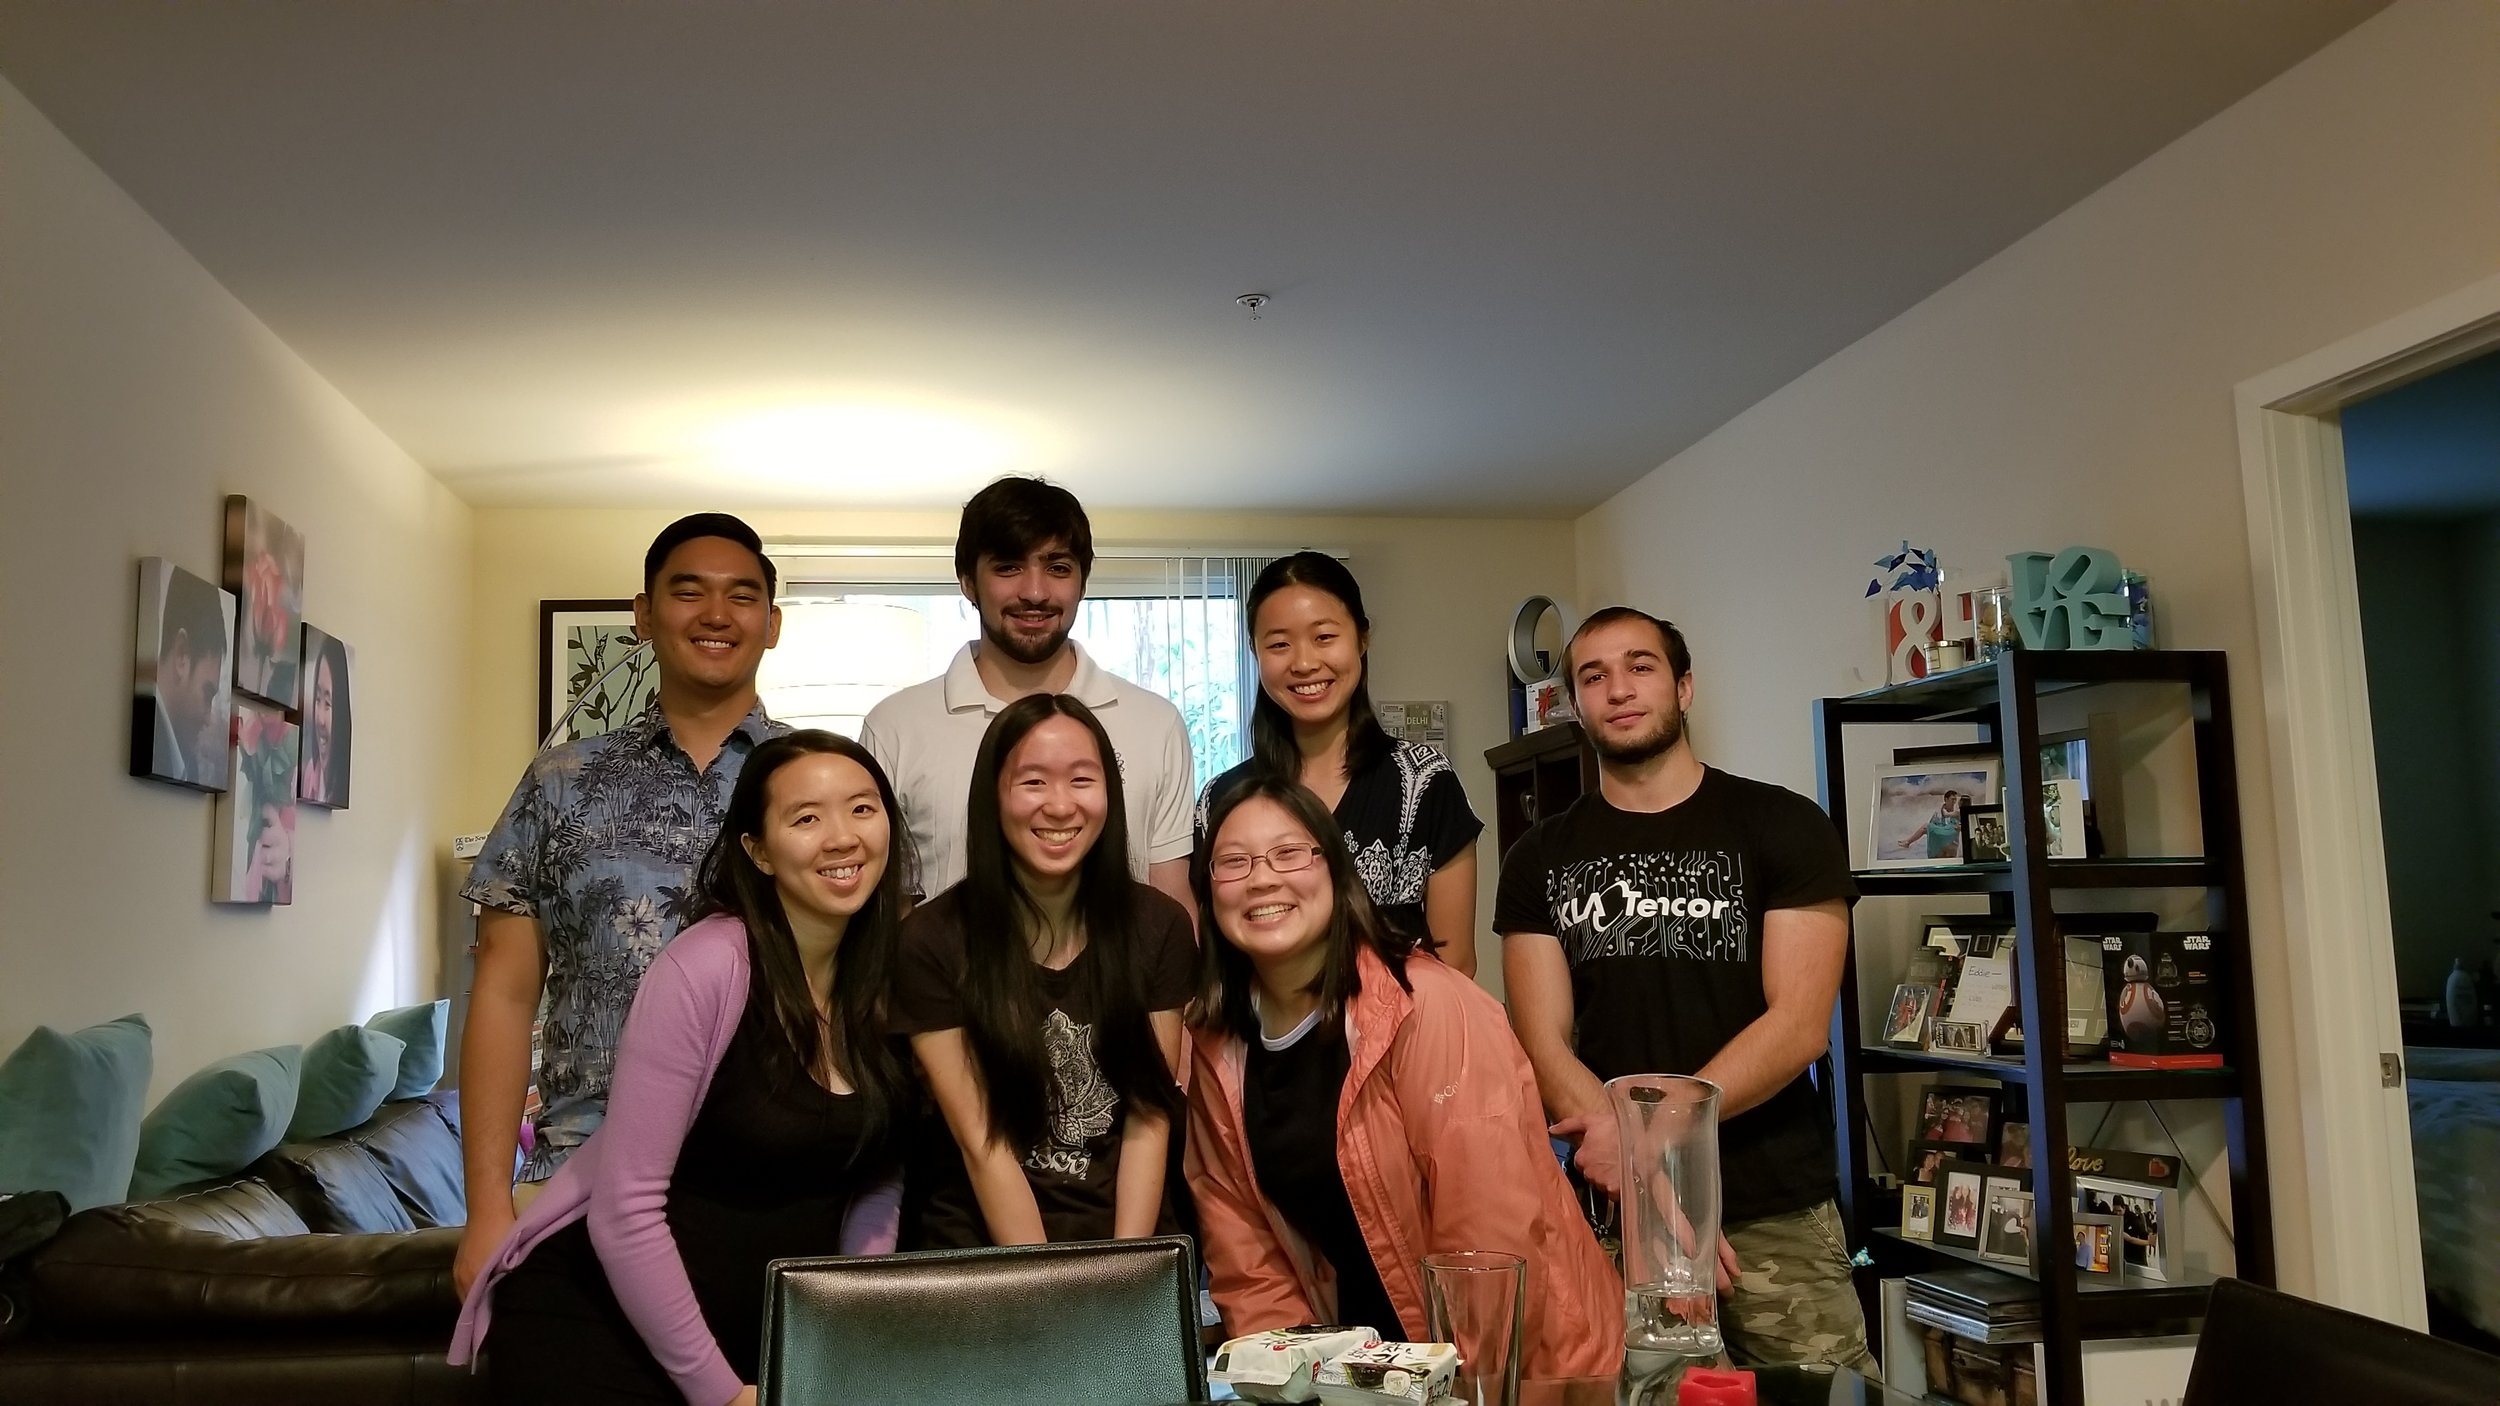 Eddie Truong-Cao (BS '07) took six undergraduate students out to lunch on Sunday, February 11th, thanks Eddie!